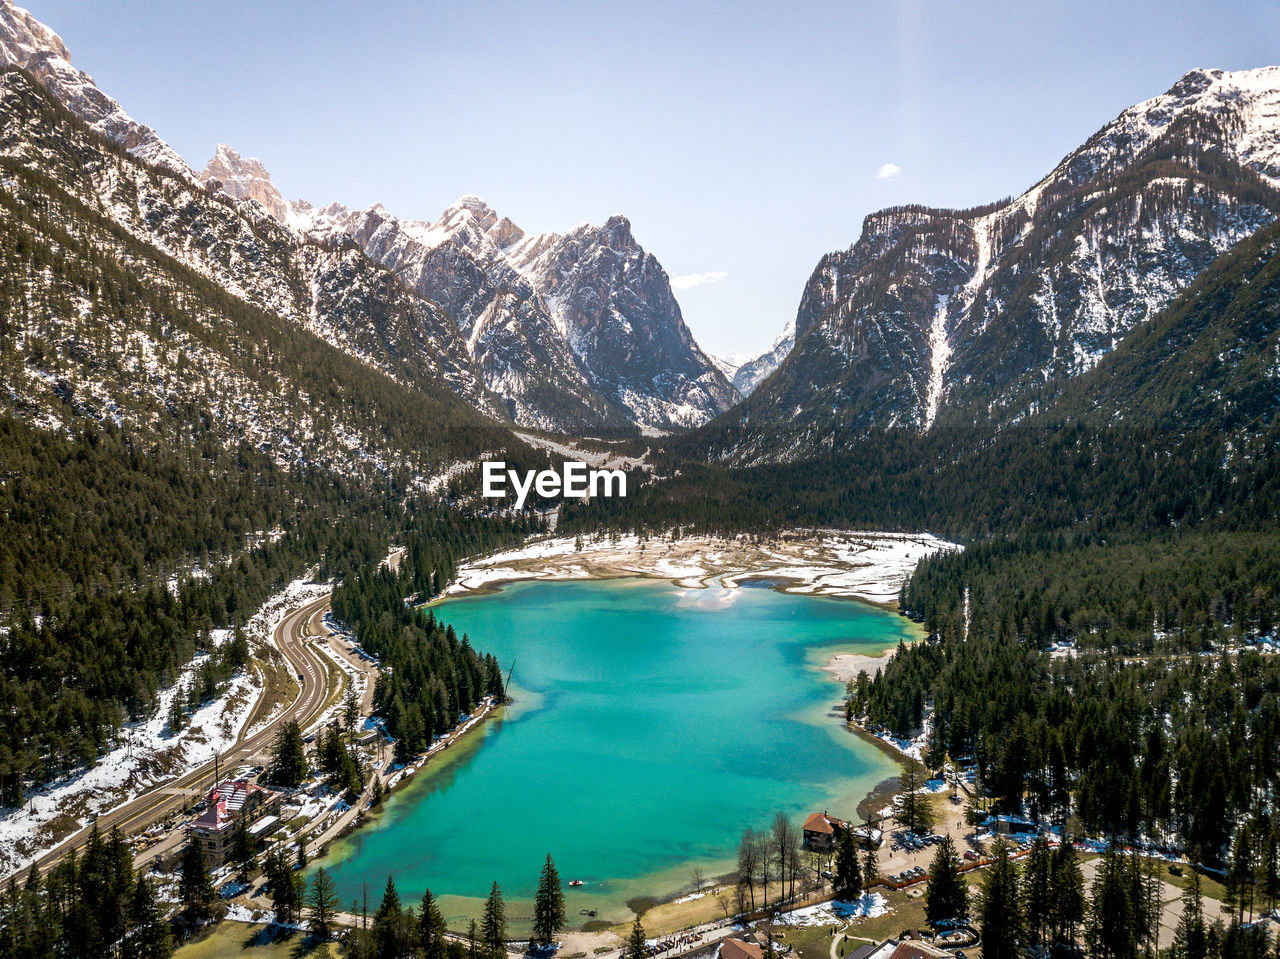 mountain, water, beauty in nature, scenics - nature, sky, lake, nature, plant, tree, winter, day, snow, tranquil scene, cold temperature, tranquility, non-urban scene, mountain range, travel, environment, outdoors, turquoise colored, snowcapped mountain